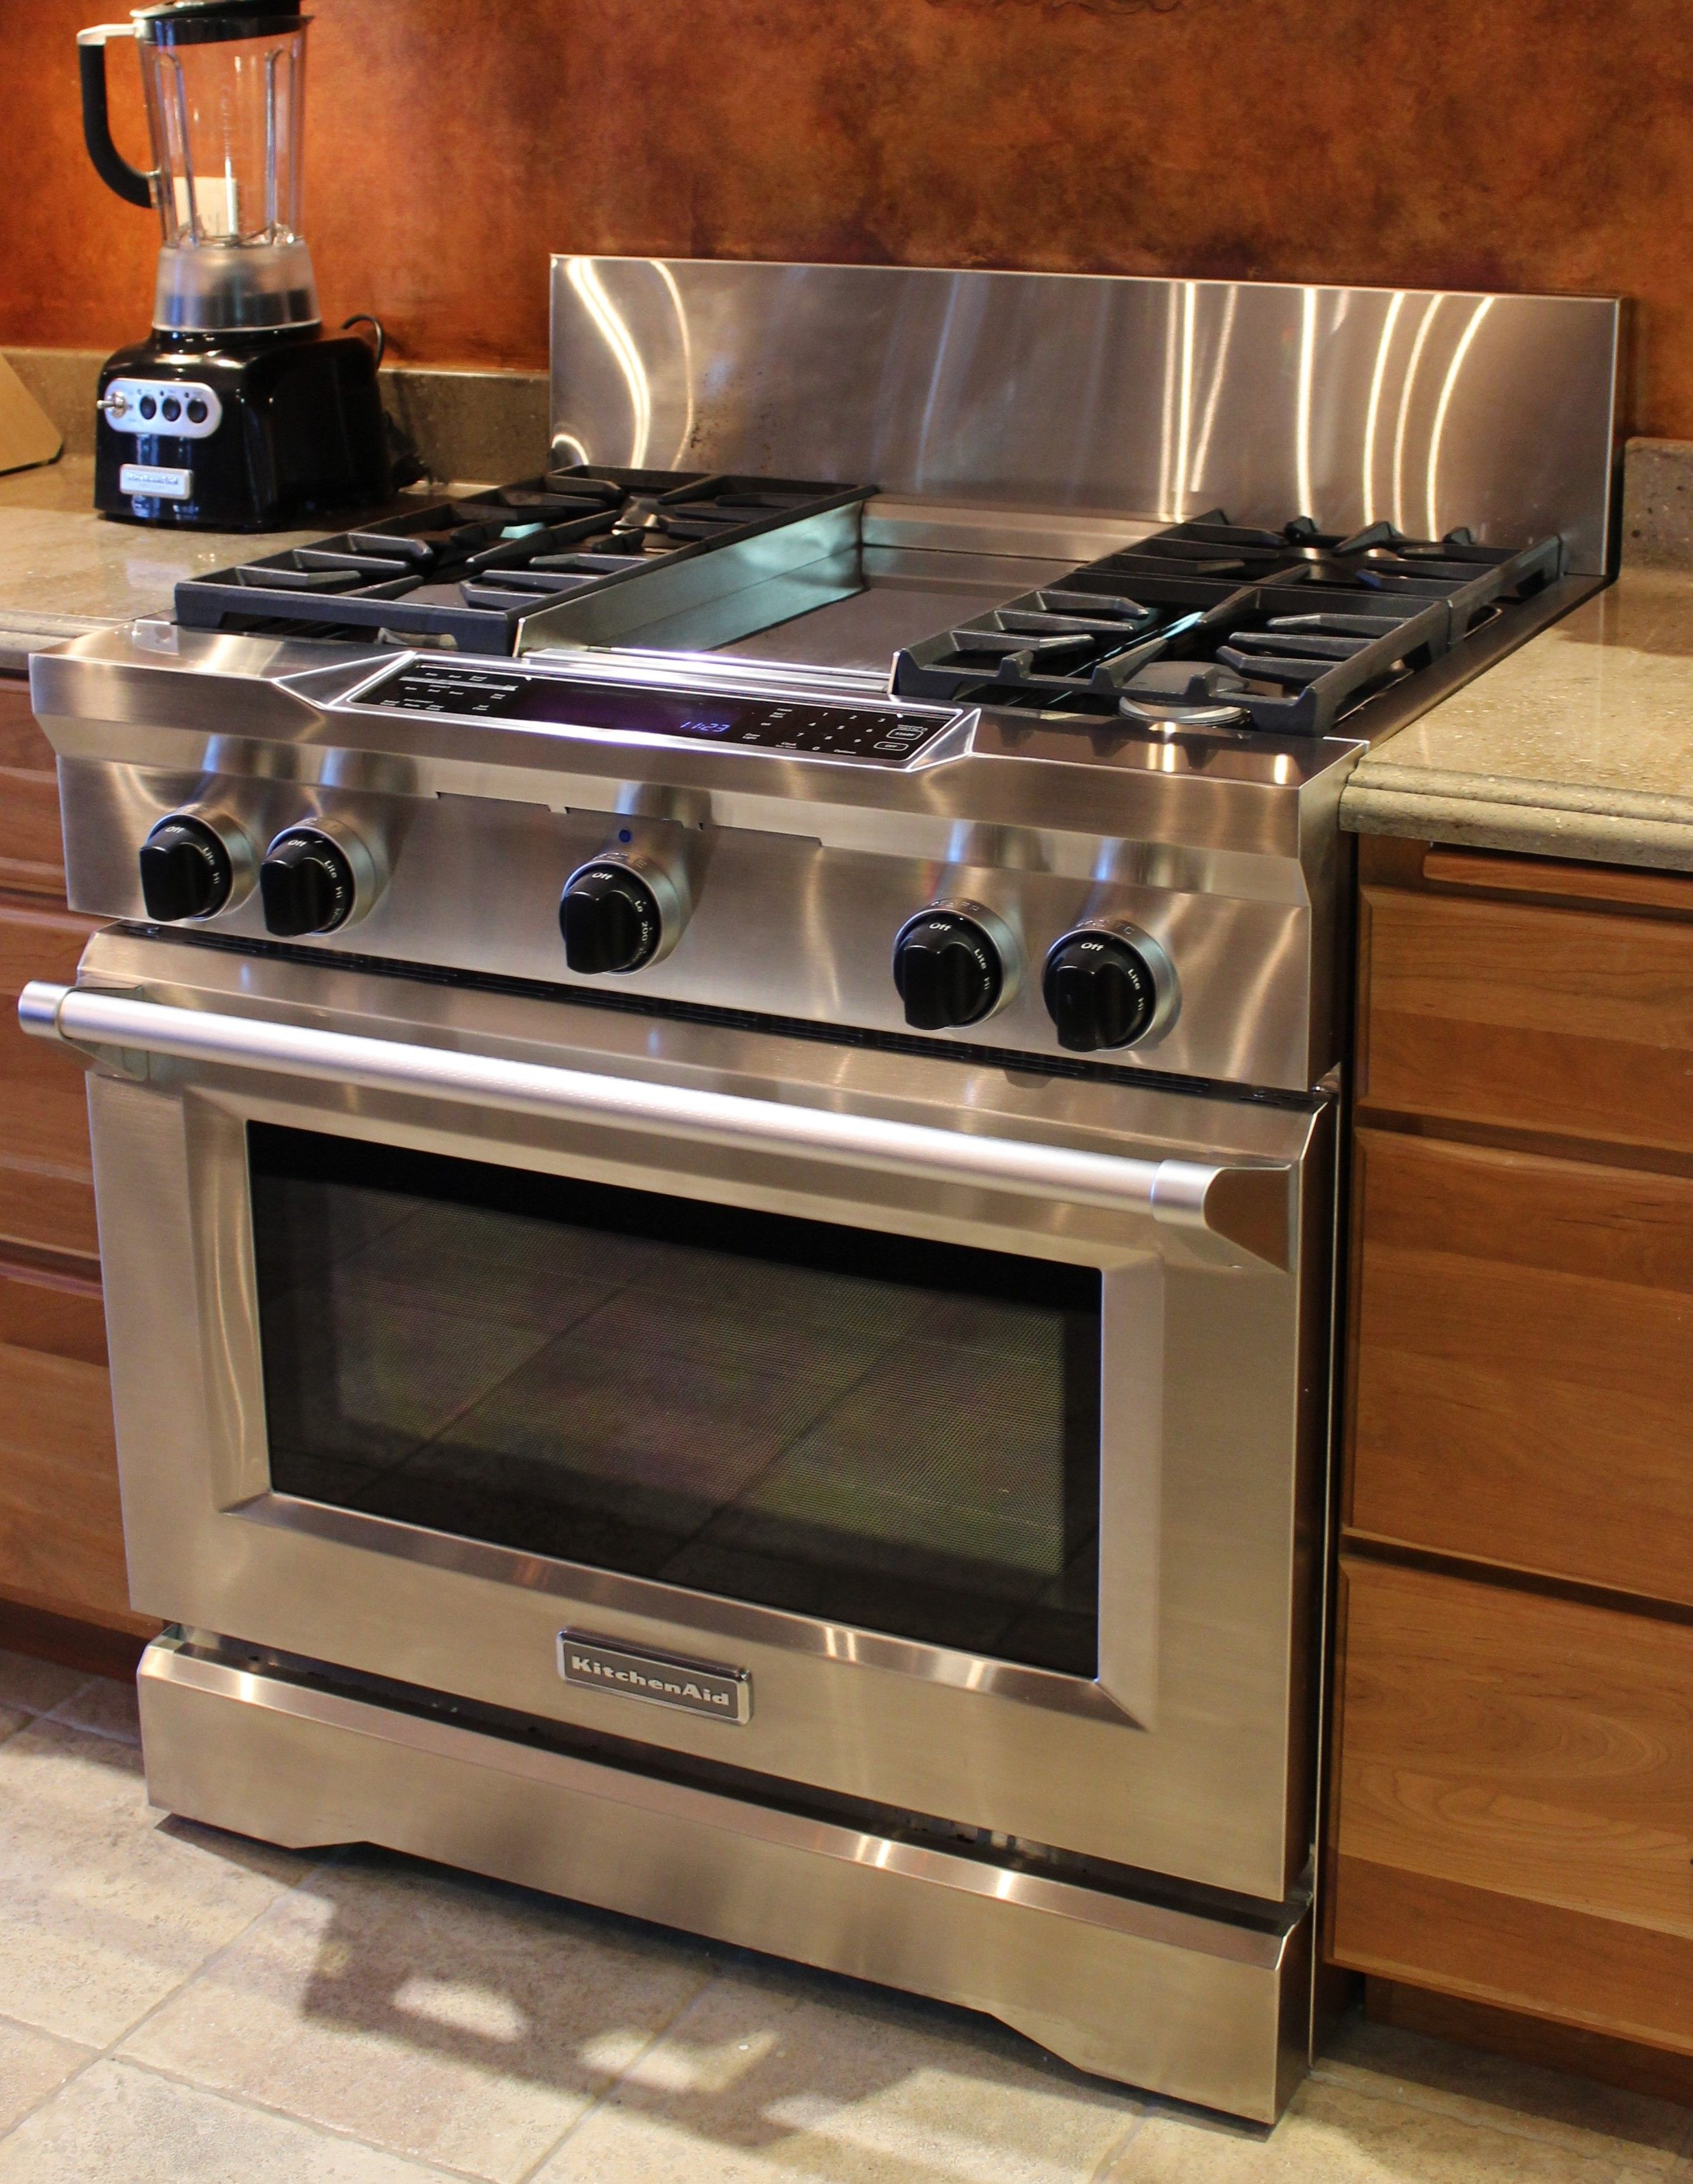 This Commercial Kitchenaid Range Has Four Burners And A Griddle In